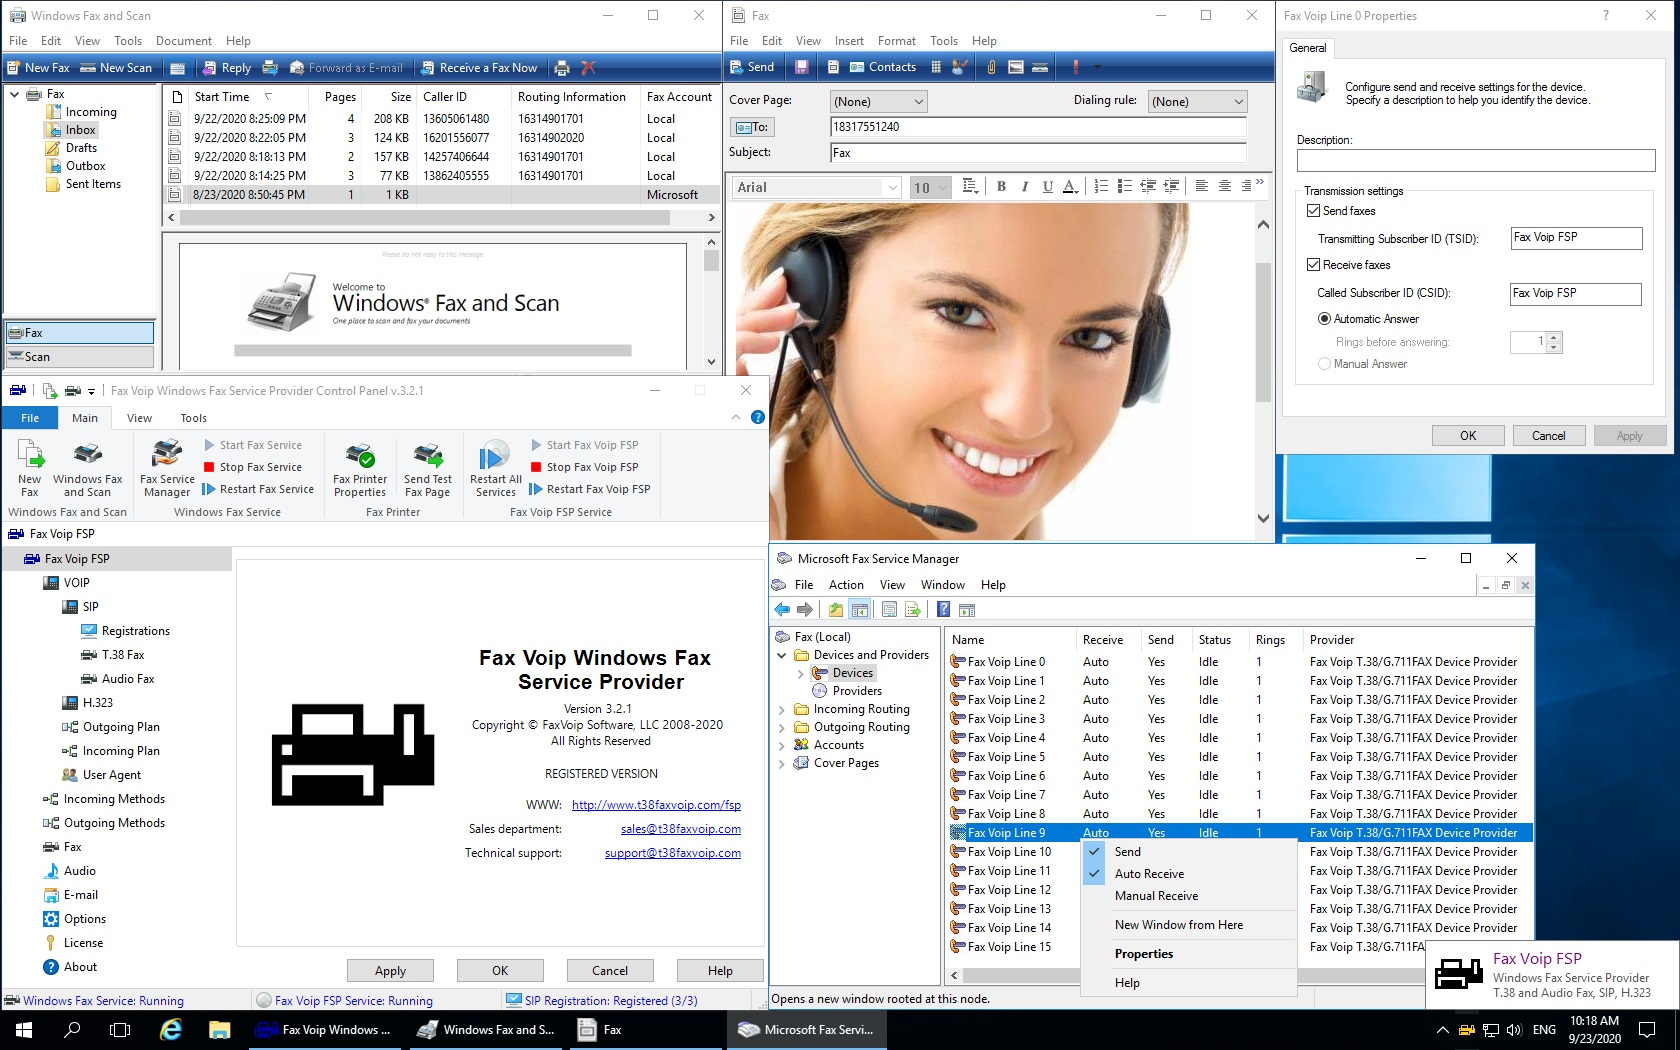 Fax Voip Windows Fax Service Provider Shareware